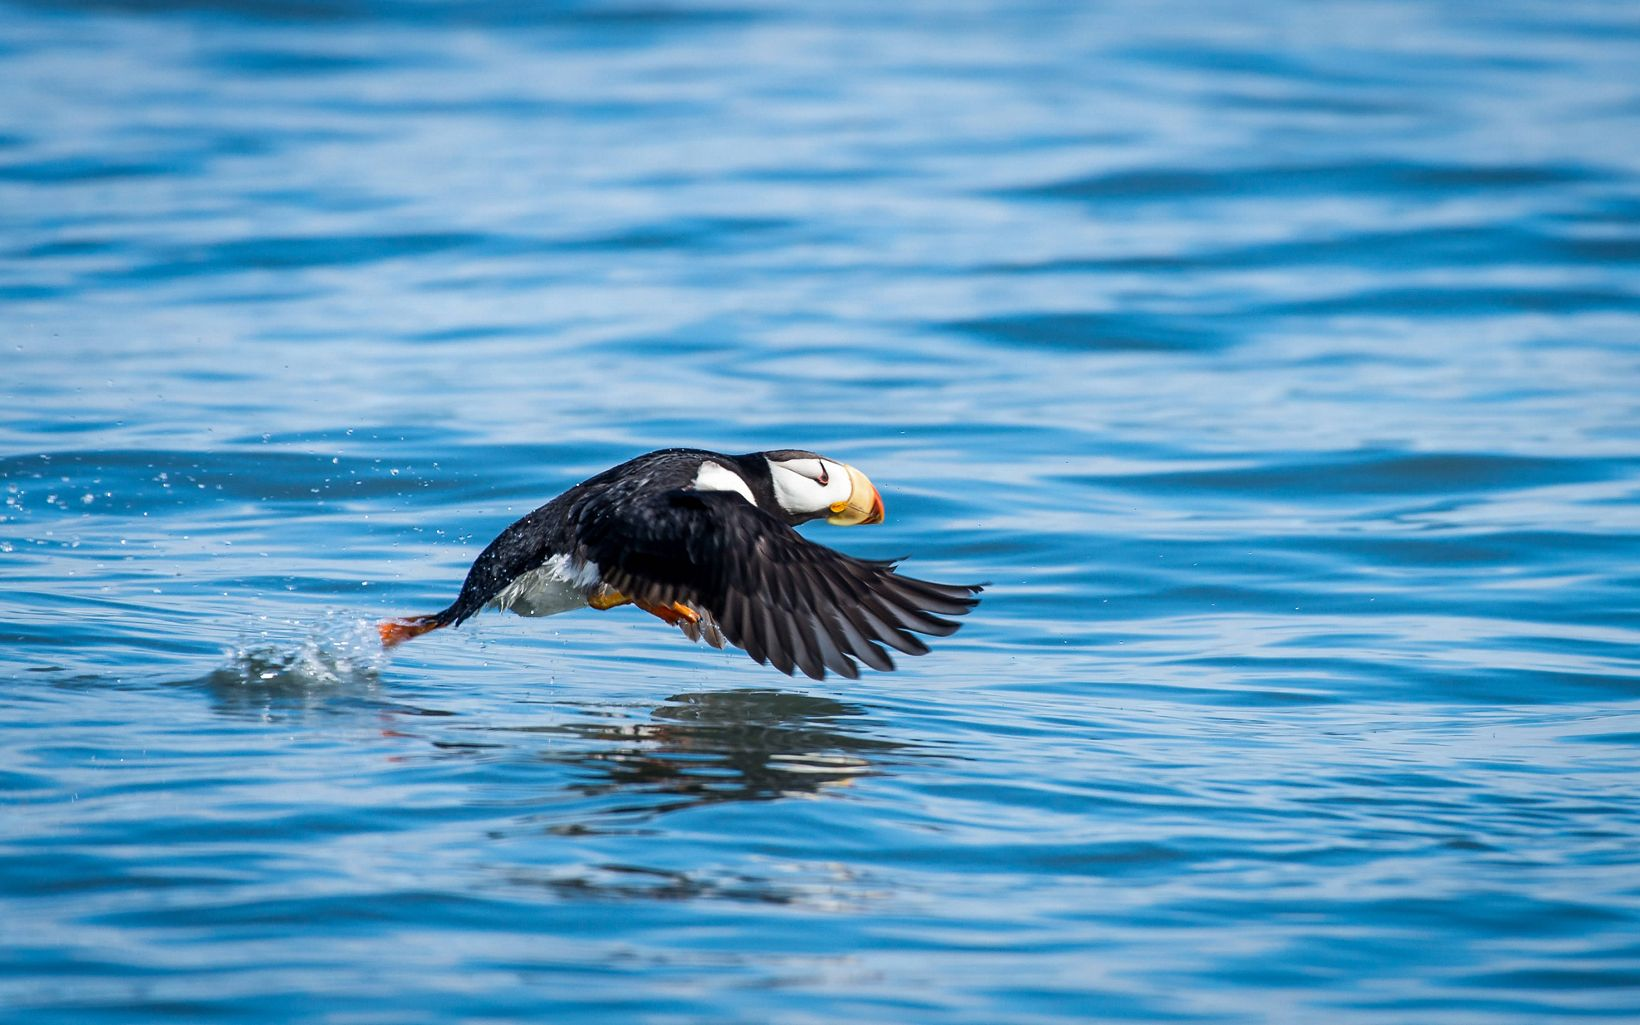 A puffin in flight near Lake Clark National Park, Alaska.